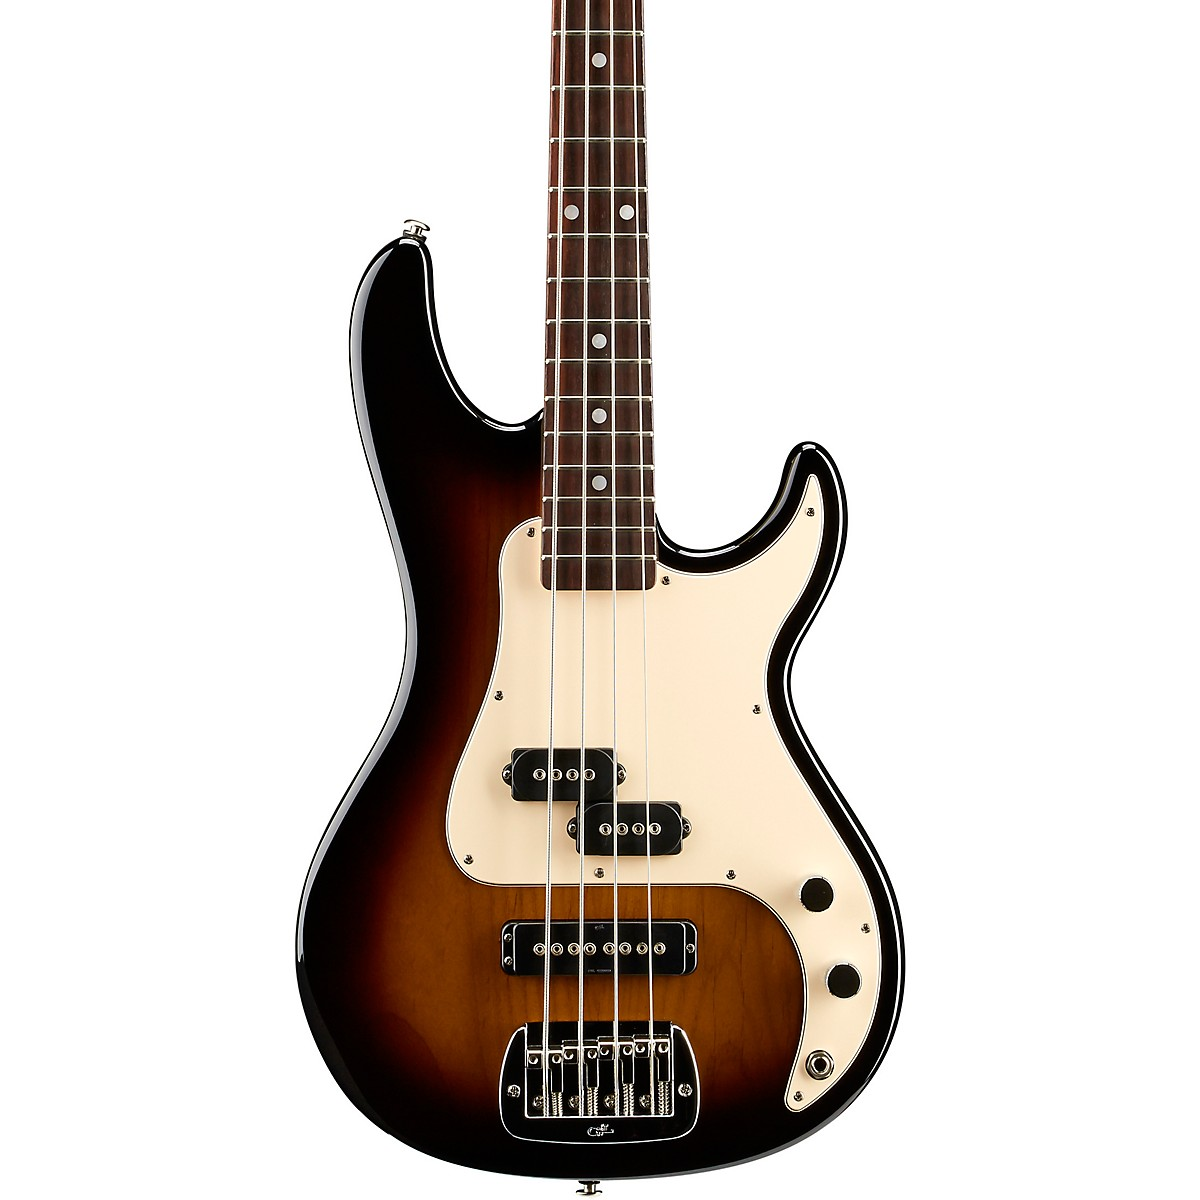 G&L SB-2 Electric Bass Guitar